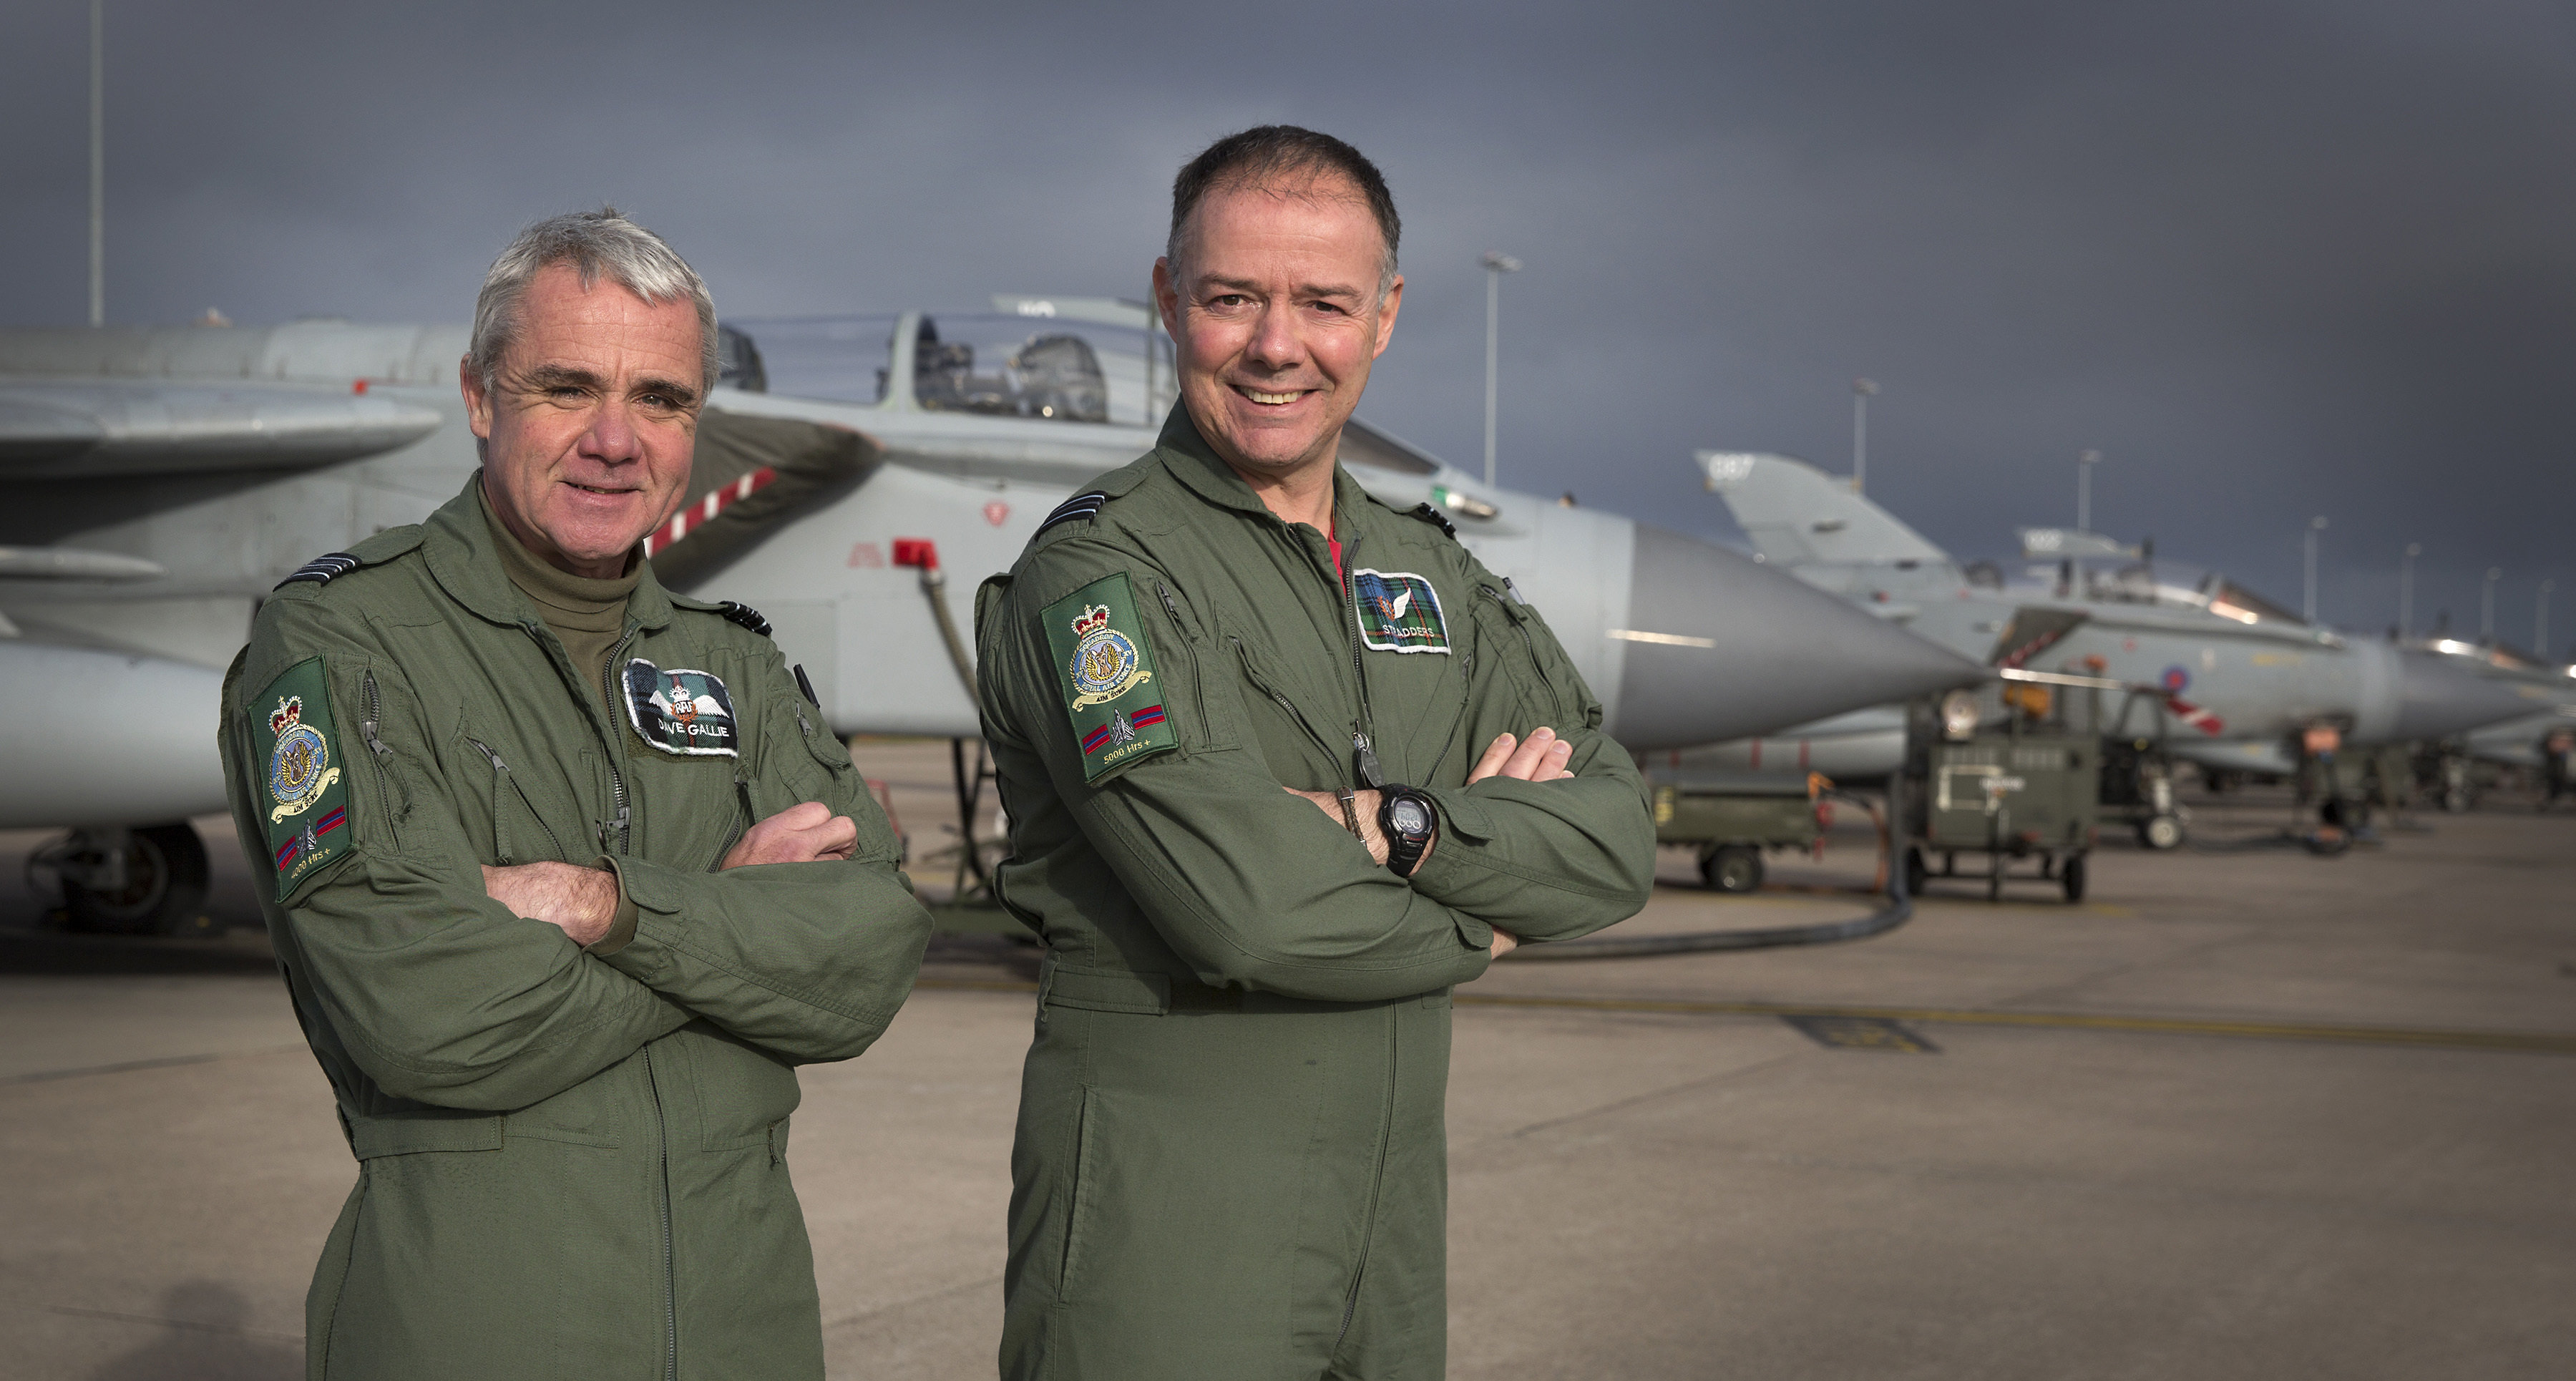 Squadron Leader Gallie (left) and Flight Lieutenant Stradling (right) of XV (Reserve) Squadron at RAF Lossiemouth have collectively amassed 10,000 hours flying time in a Tornado.